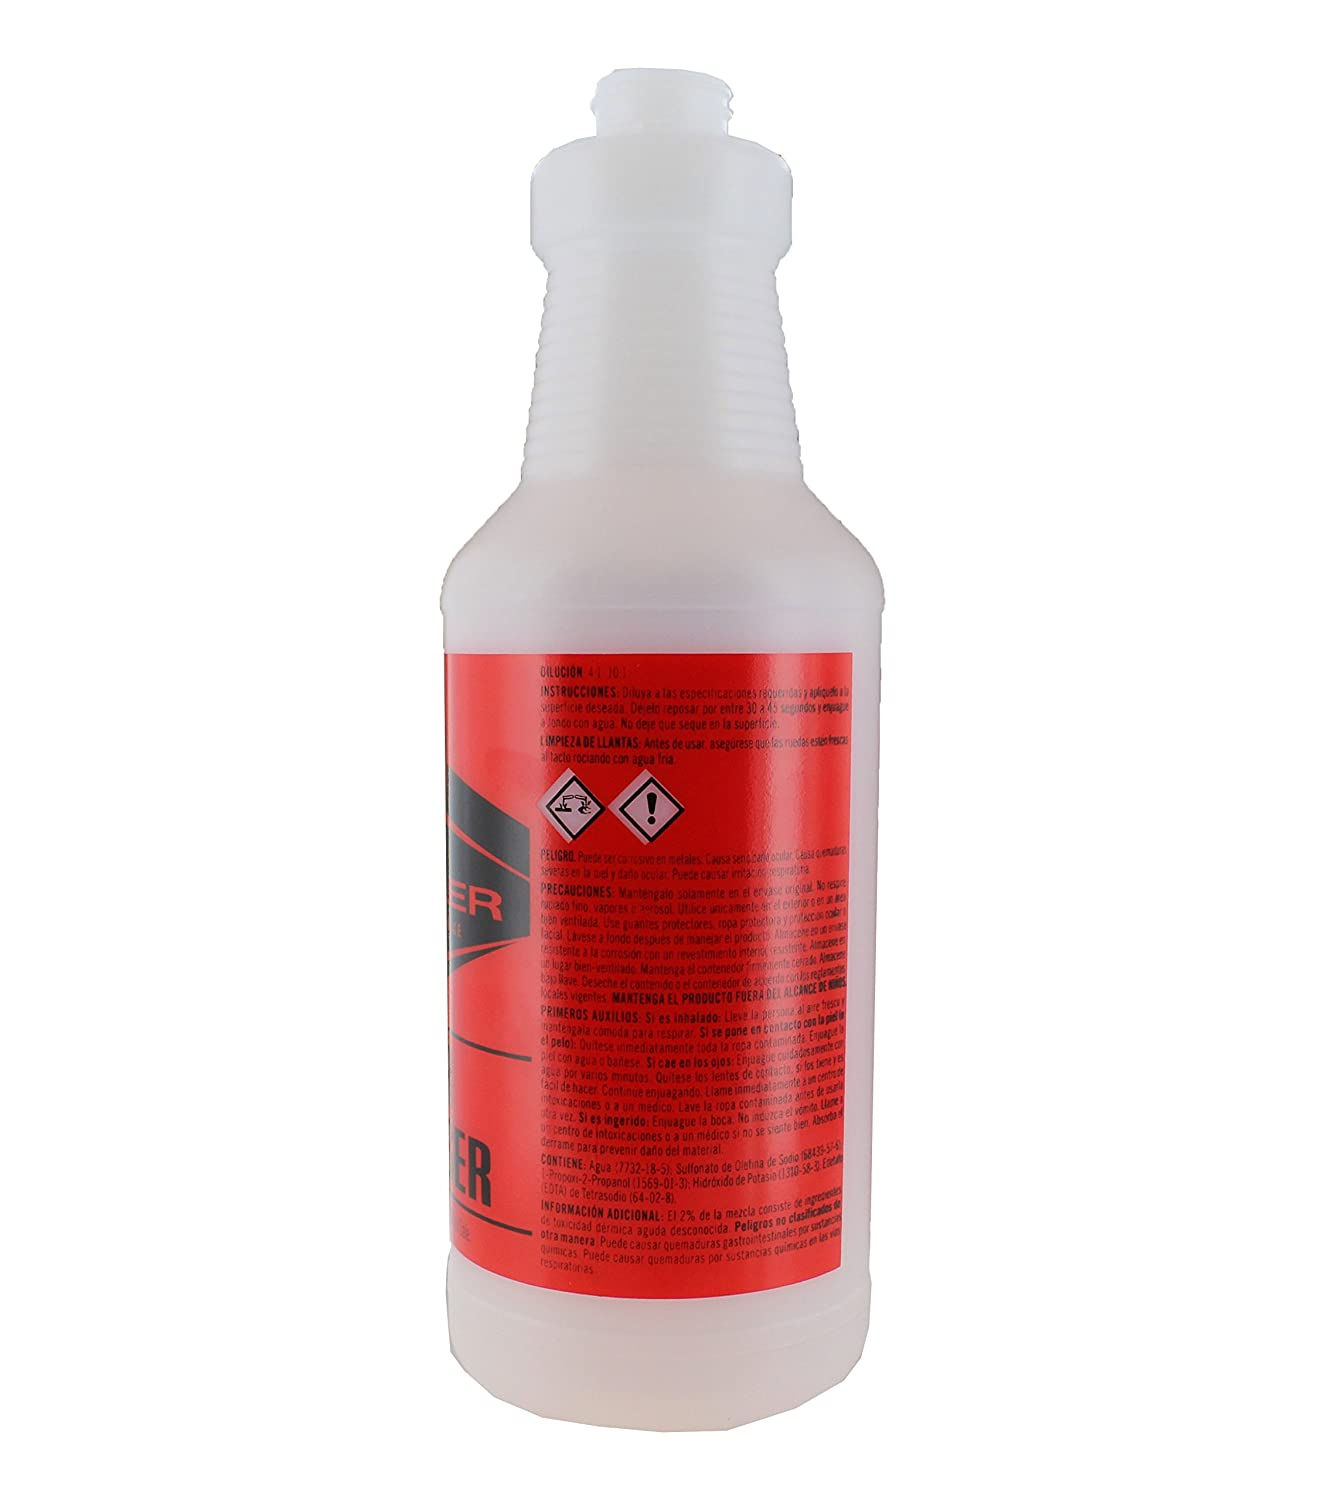 Meguiars D20108 Super Degreaser Bottle - 32 oz. Capacity: Amazon.com: Industrial & Scientific